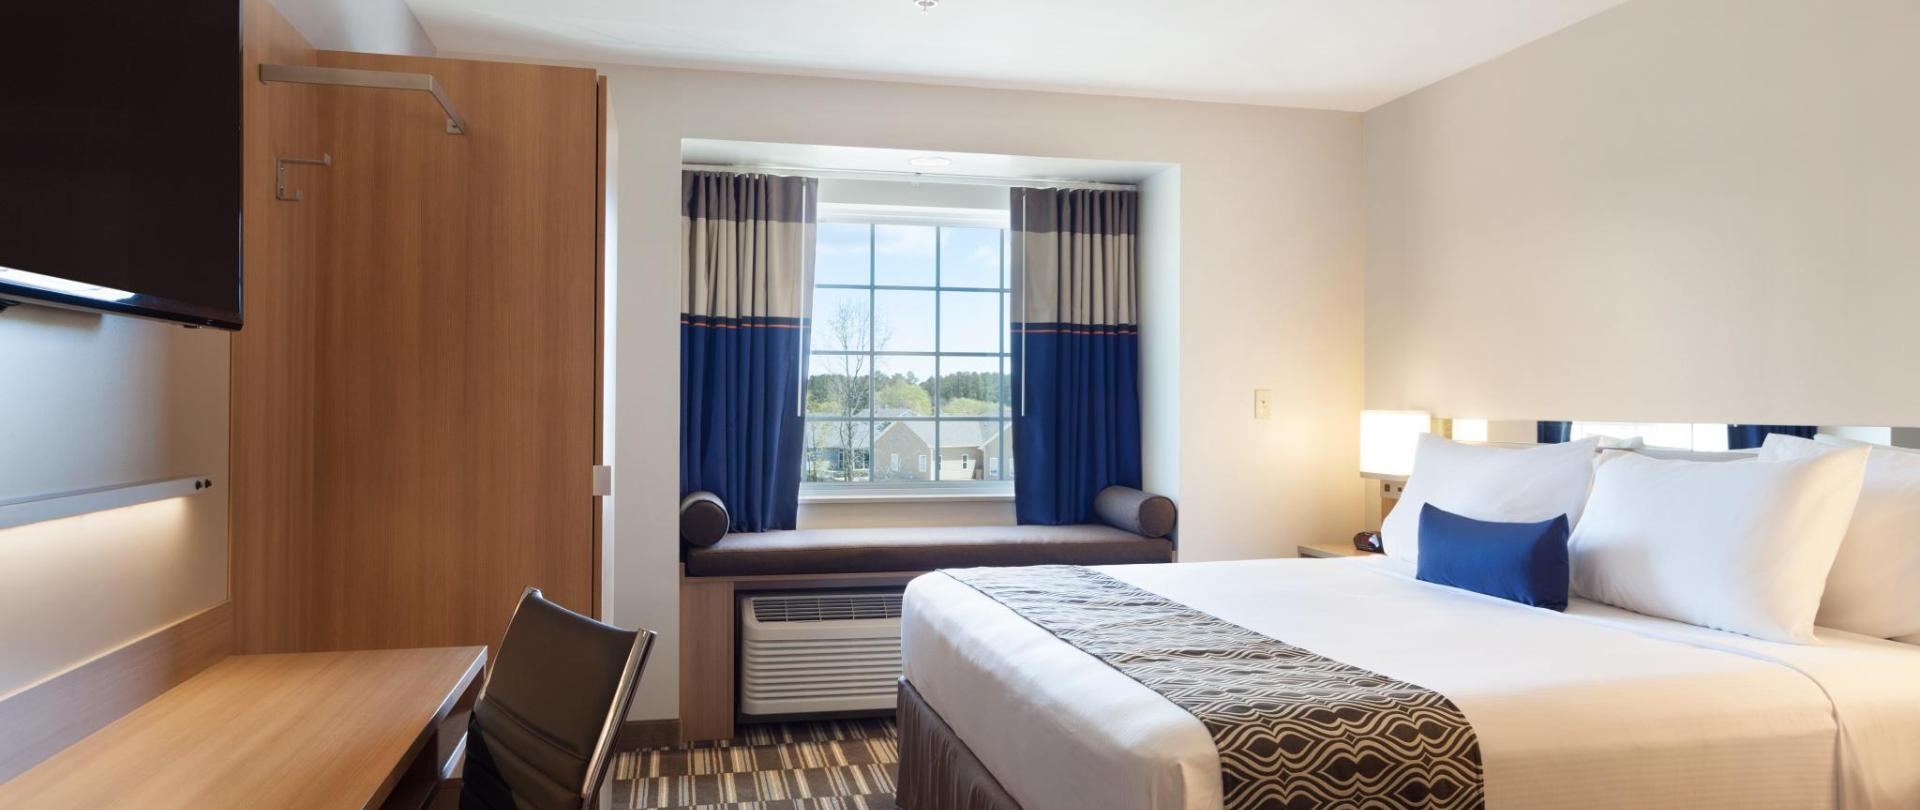 King Bed Hotel Room